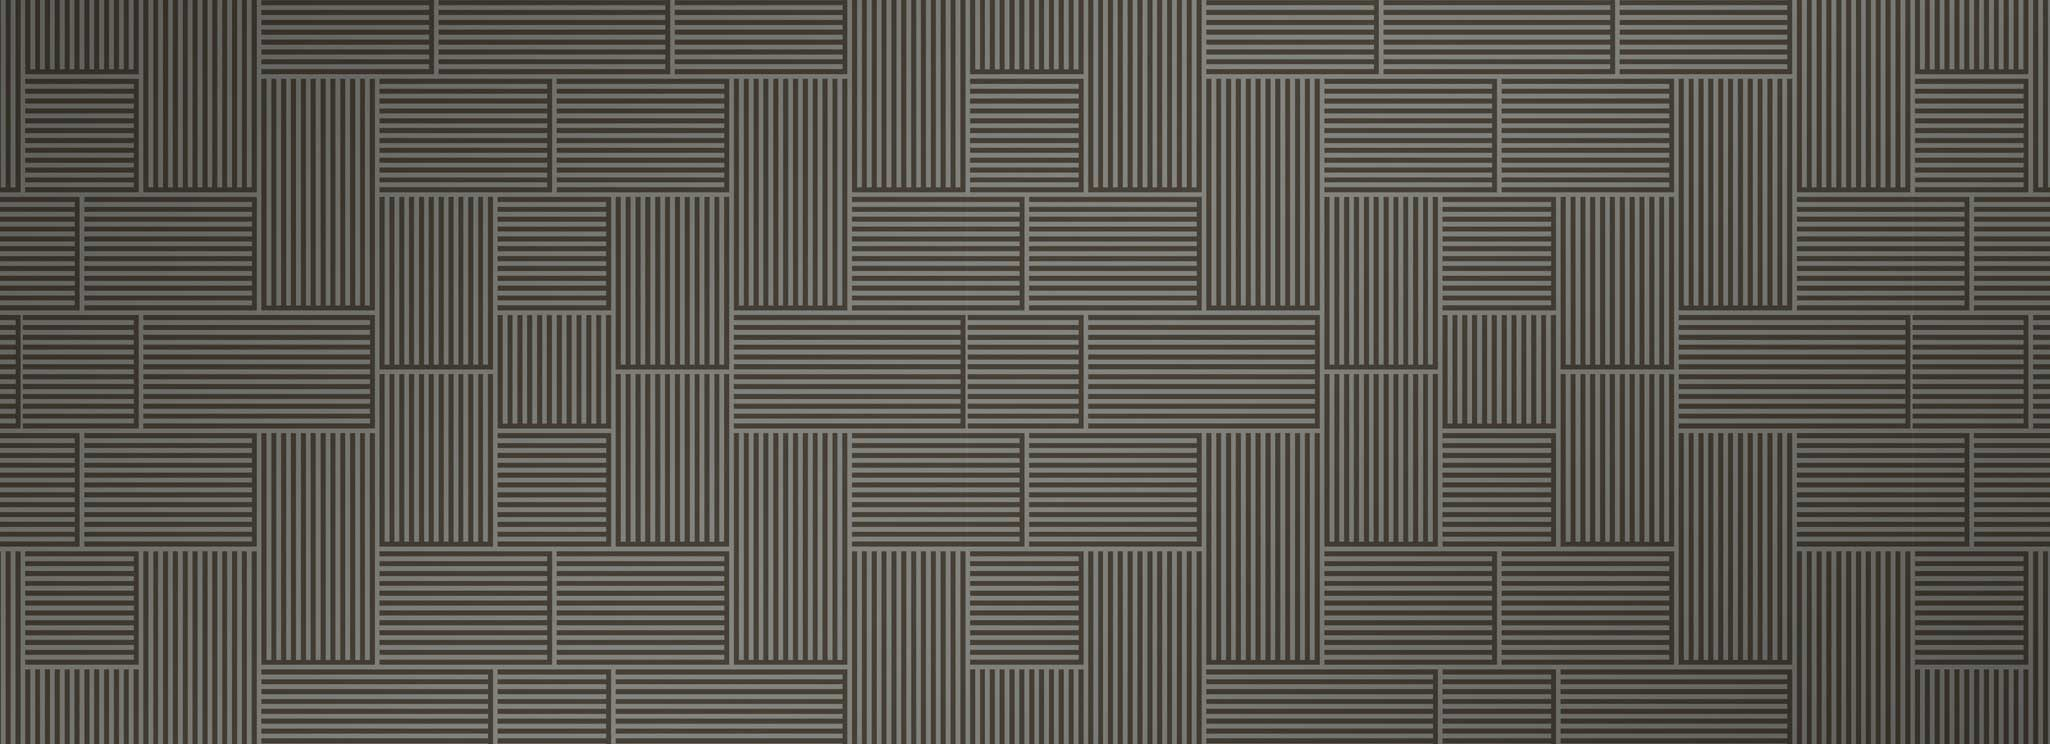 Patterndesign Relief